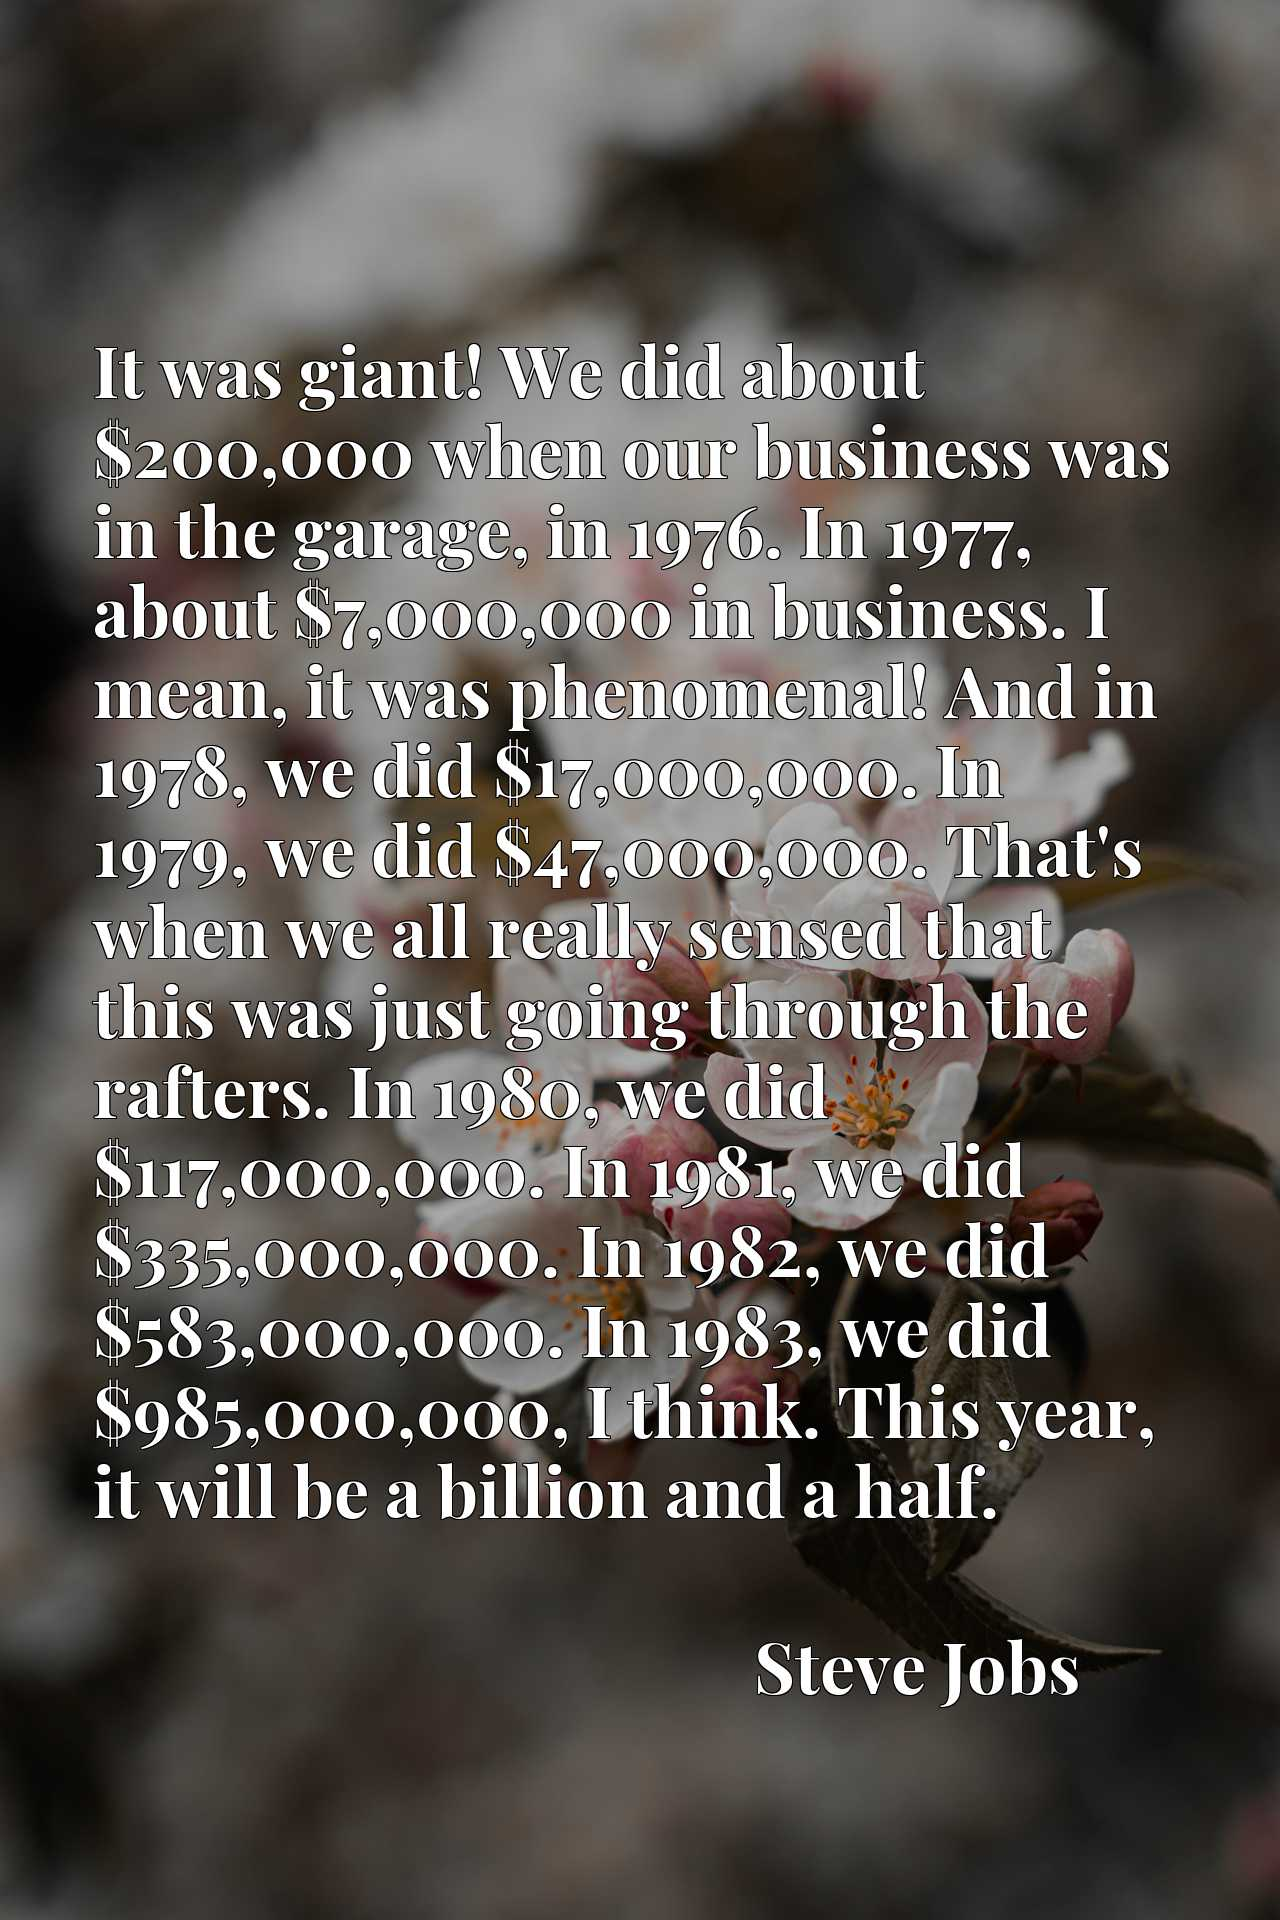 It was giant! We did about $200,000 when our business was in the garage, in 1976. In 1977, about $7,000,000 in business. I mean, it was phenomenal! And in 1978, we did $17,000,000. In 1979, we did $47,000,000. That's when we all really sensed that this was just going through the rafters. In 1980, we did $117,000,000. In 1981, we did $335,000,000. In 1982, we did $583,000,000. In 1983, we did $985,000,000, I think. This year, it will be a billion and a half.